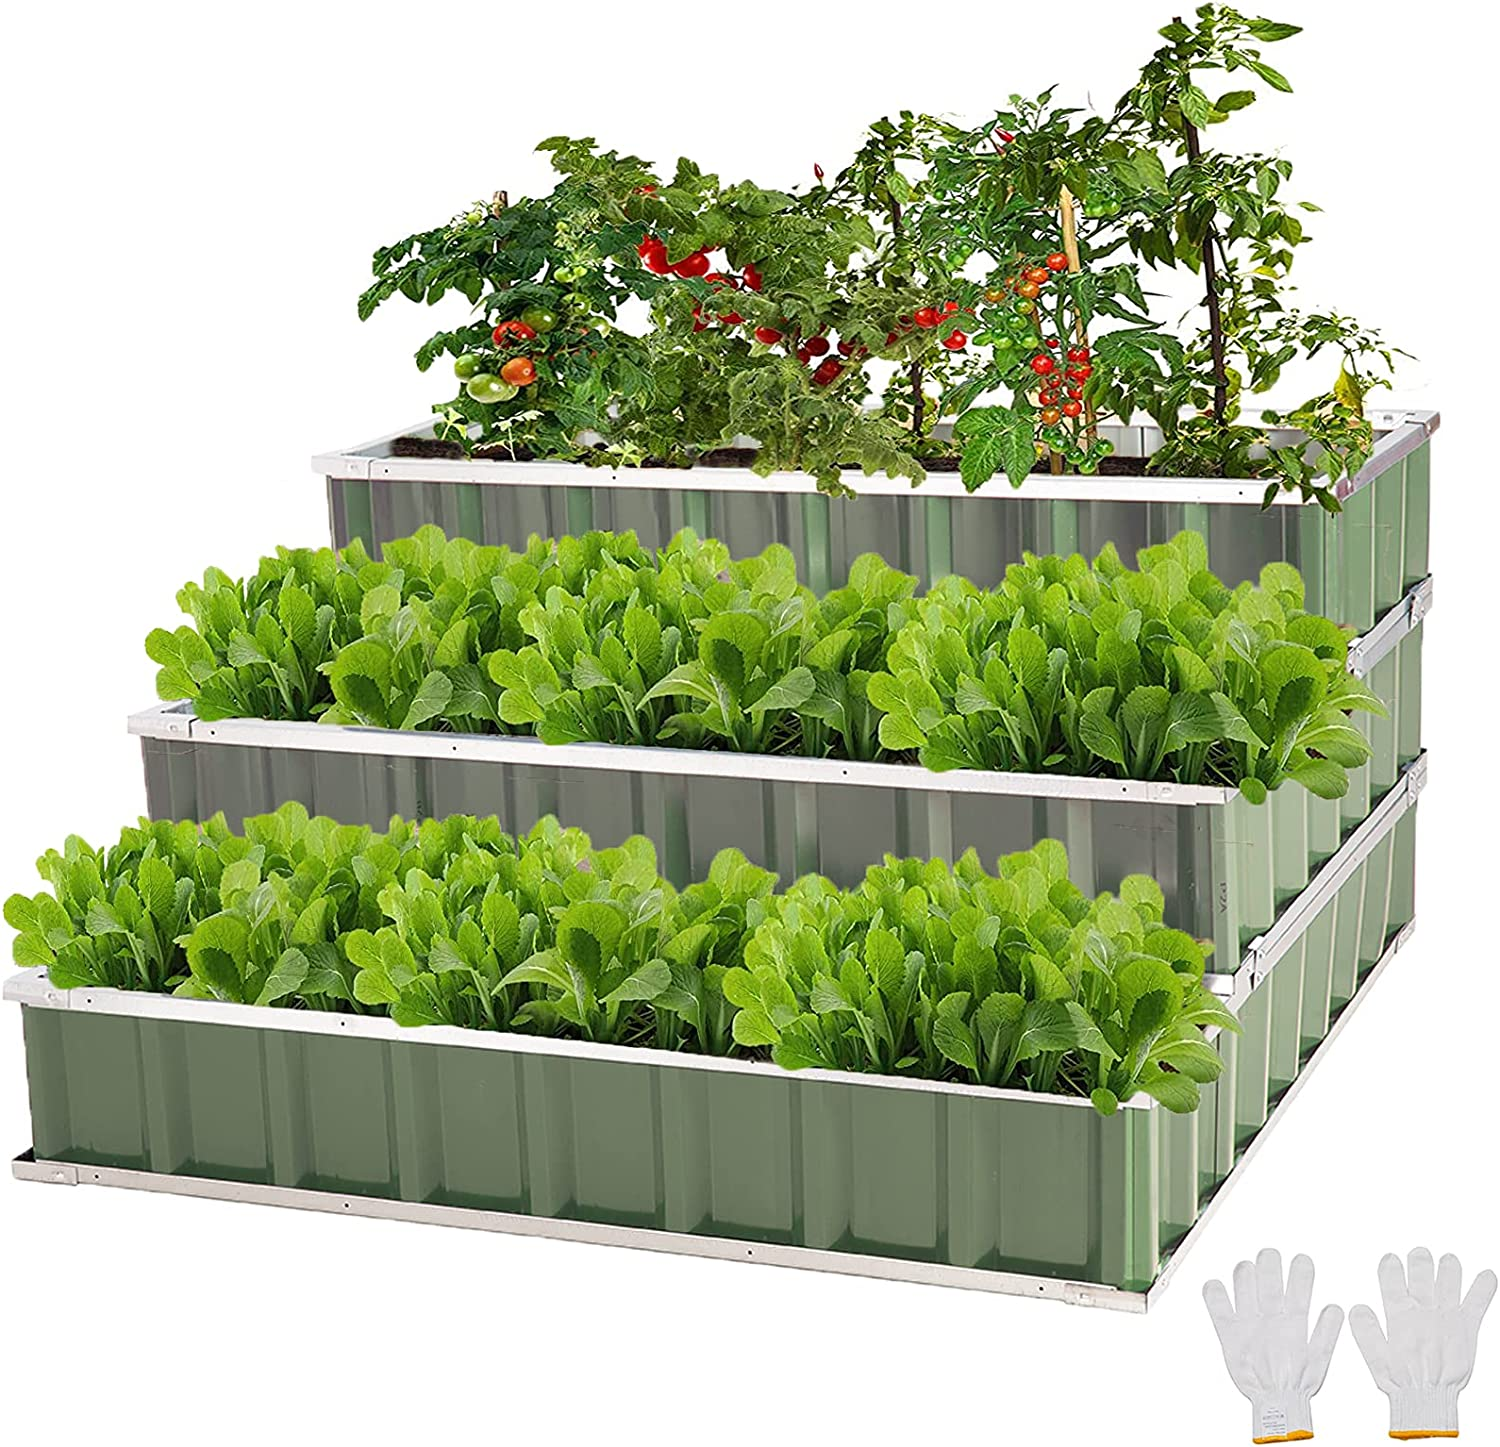 FORTUNO 3 Tier Raised Garden Bed Metal Elevated Planting Box Kit 46.5x46.5x23.6 Inch Outdoor Patio Steel Planter for Vegetables, Flowers, Herbs, Green